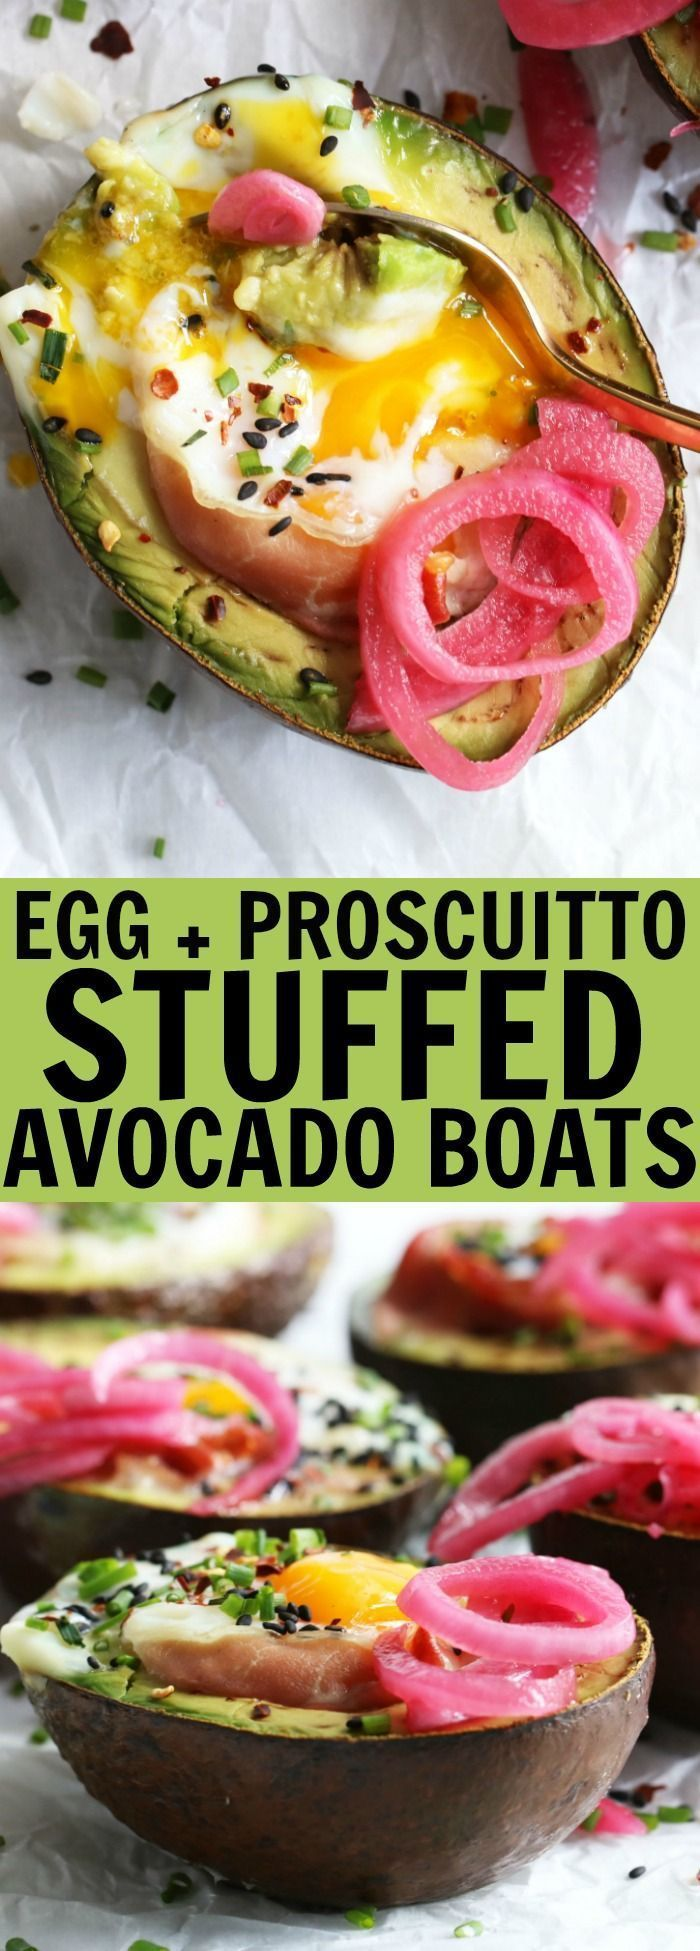 You'll love these Egg + Prosciutto Stuffed Avocado Boats for your next brunch!! This is such a tasty low carb, gluten free, and paleo recipe that is guaranteed to bring the smiles! thetoastedpinenut.com #lowcarb #keto #glutenfree #paleo #dairyfree #breakfast #brunch #avocado #boat #egg